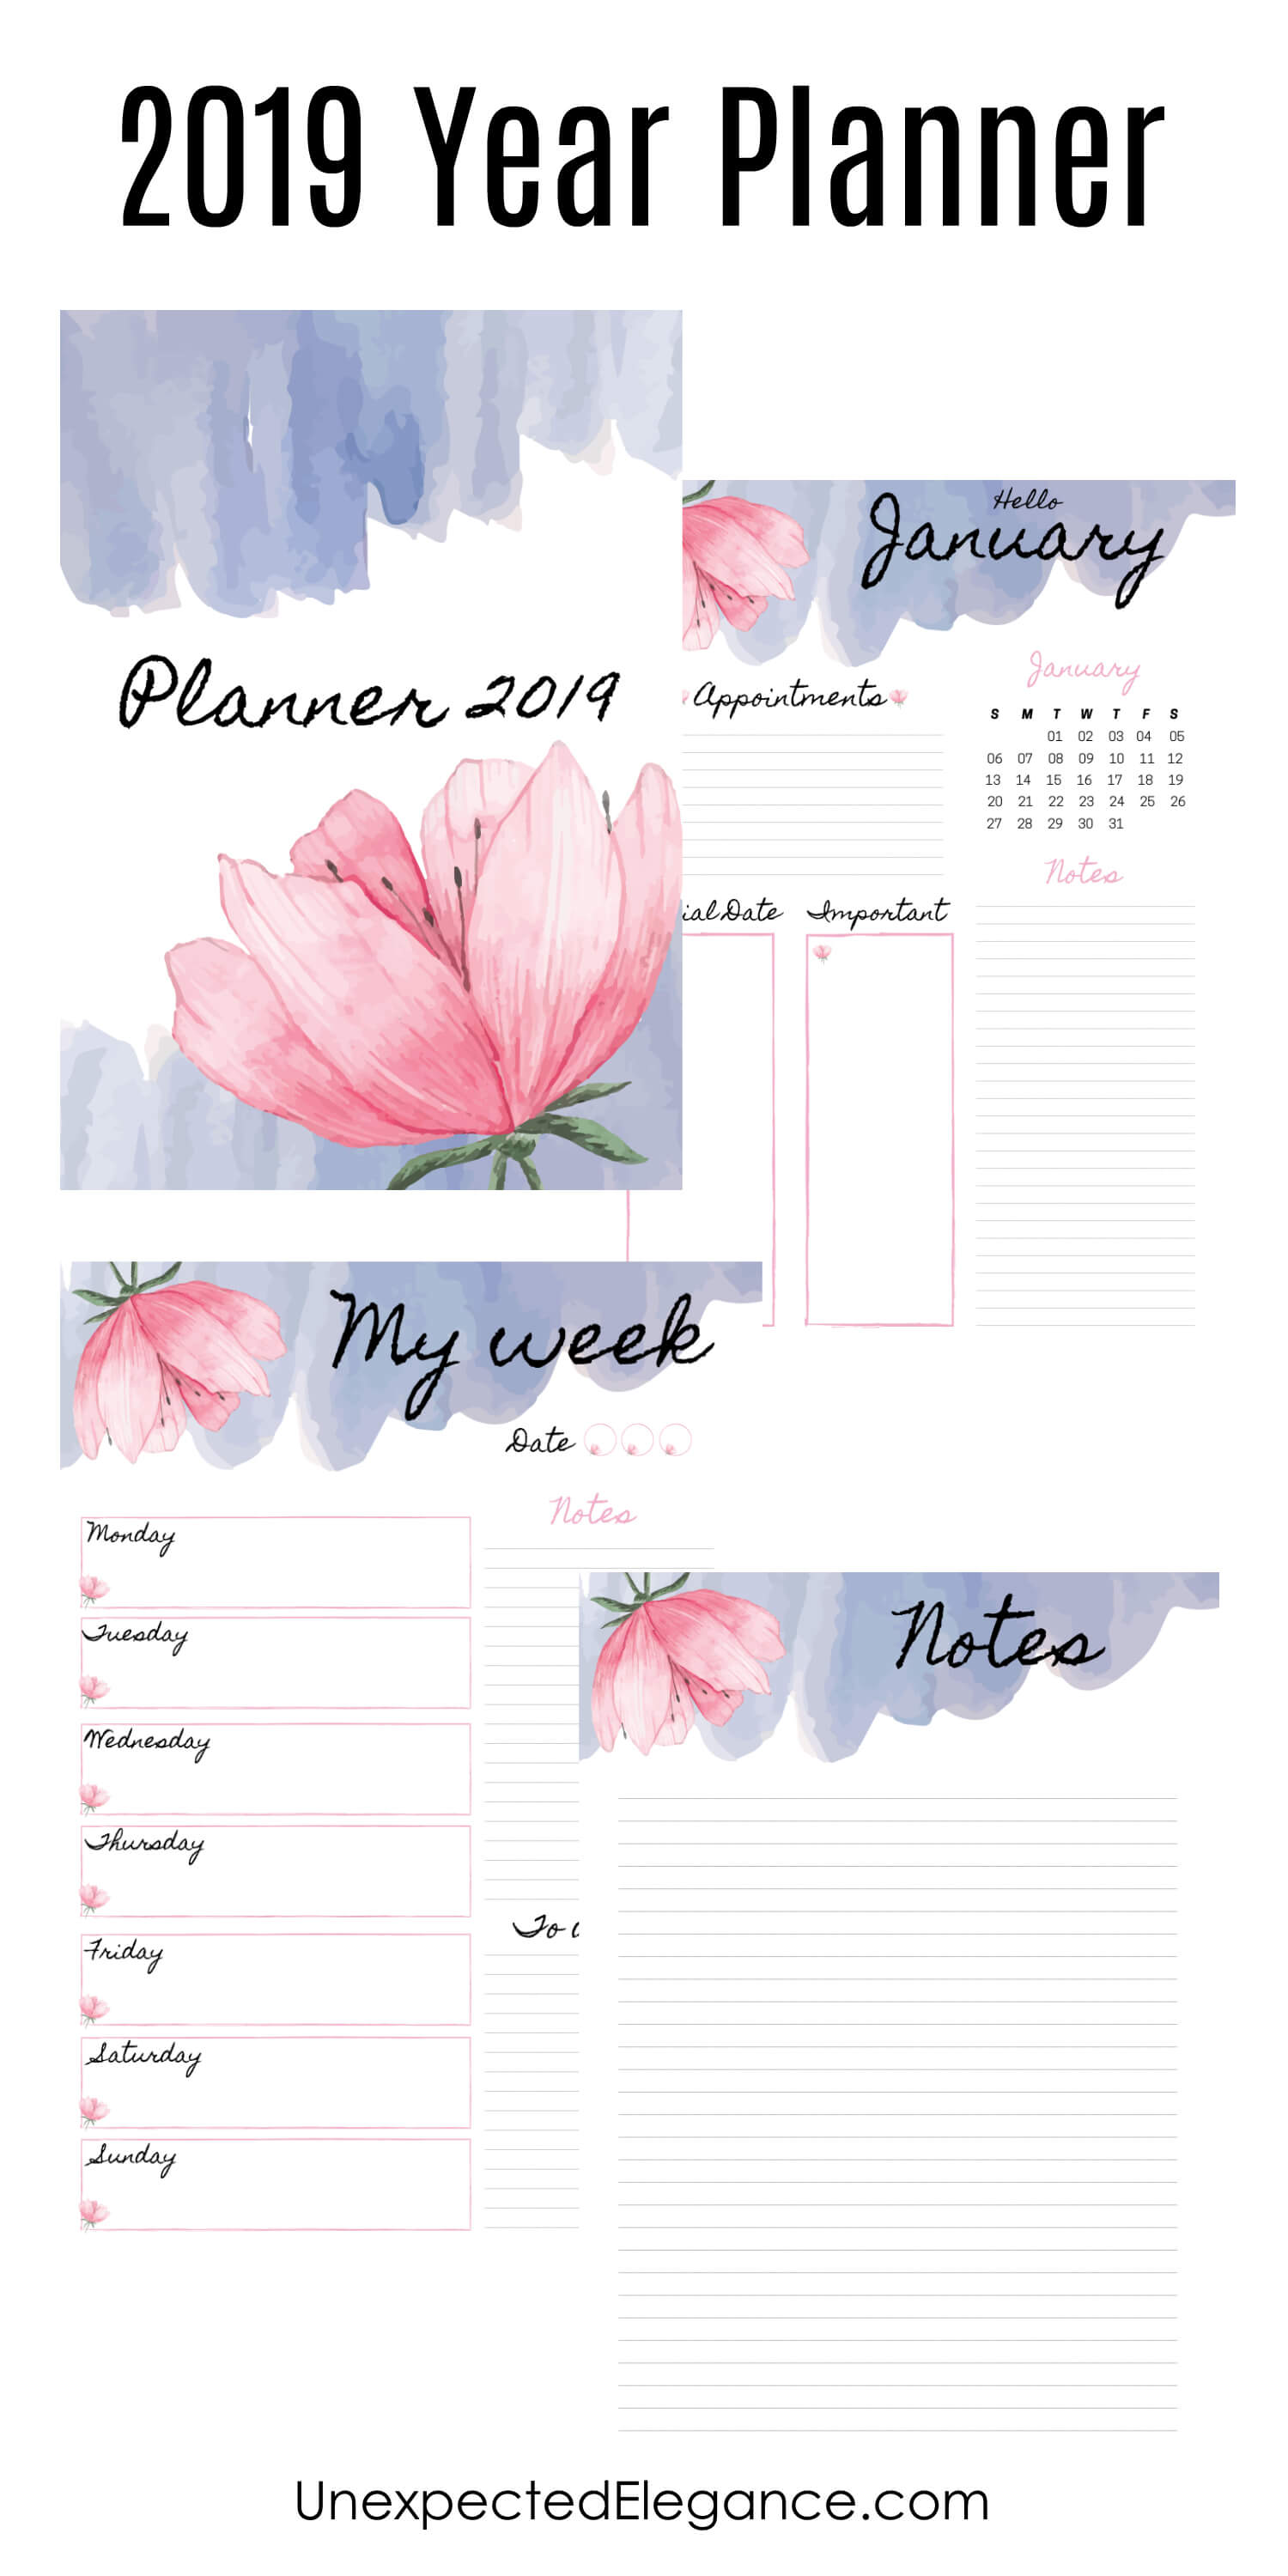 Plan for your best year yet! Get some tips for how to stick to your goals and download a FREE 2019 planner to keep track of everything.